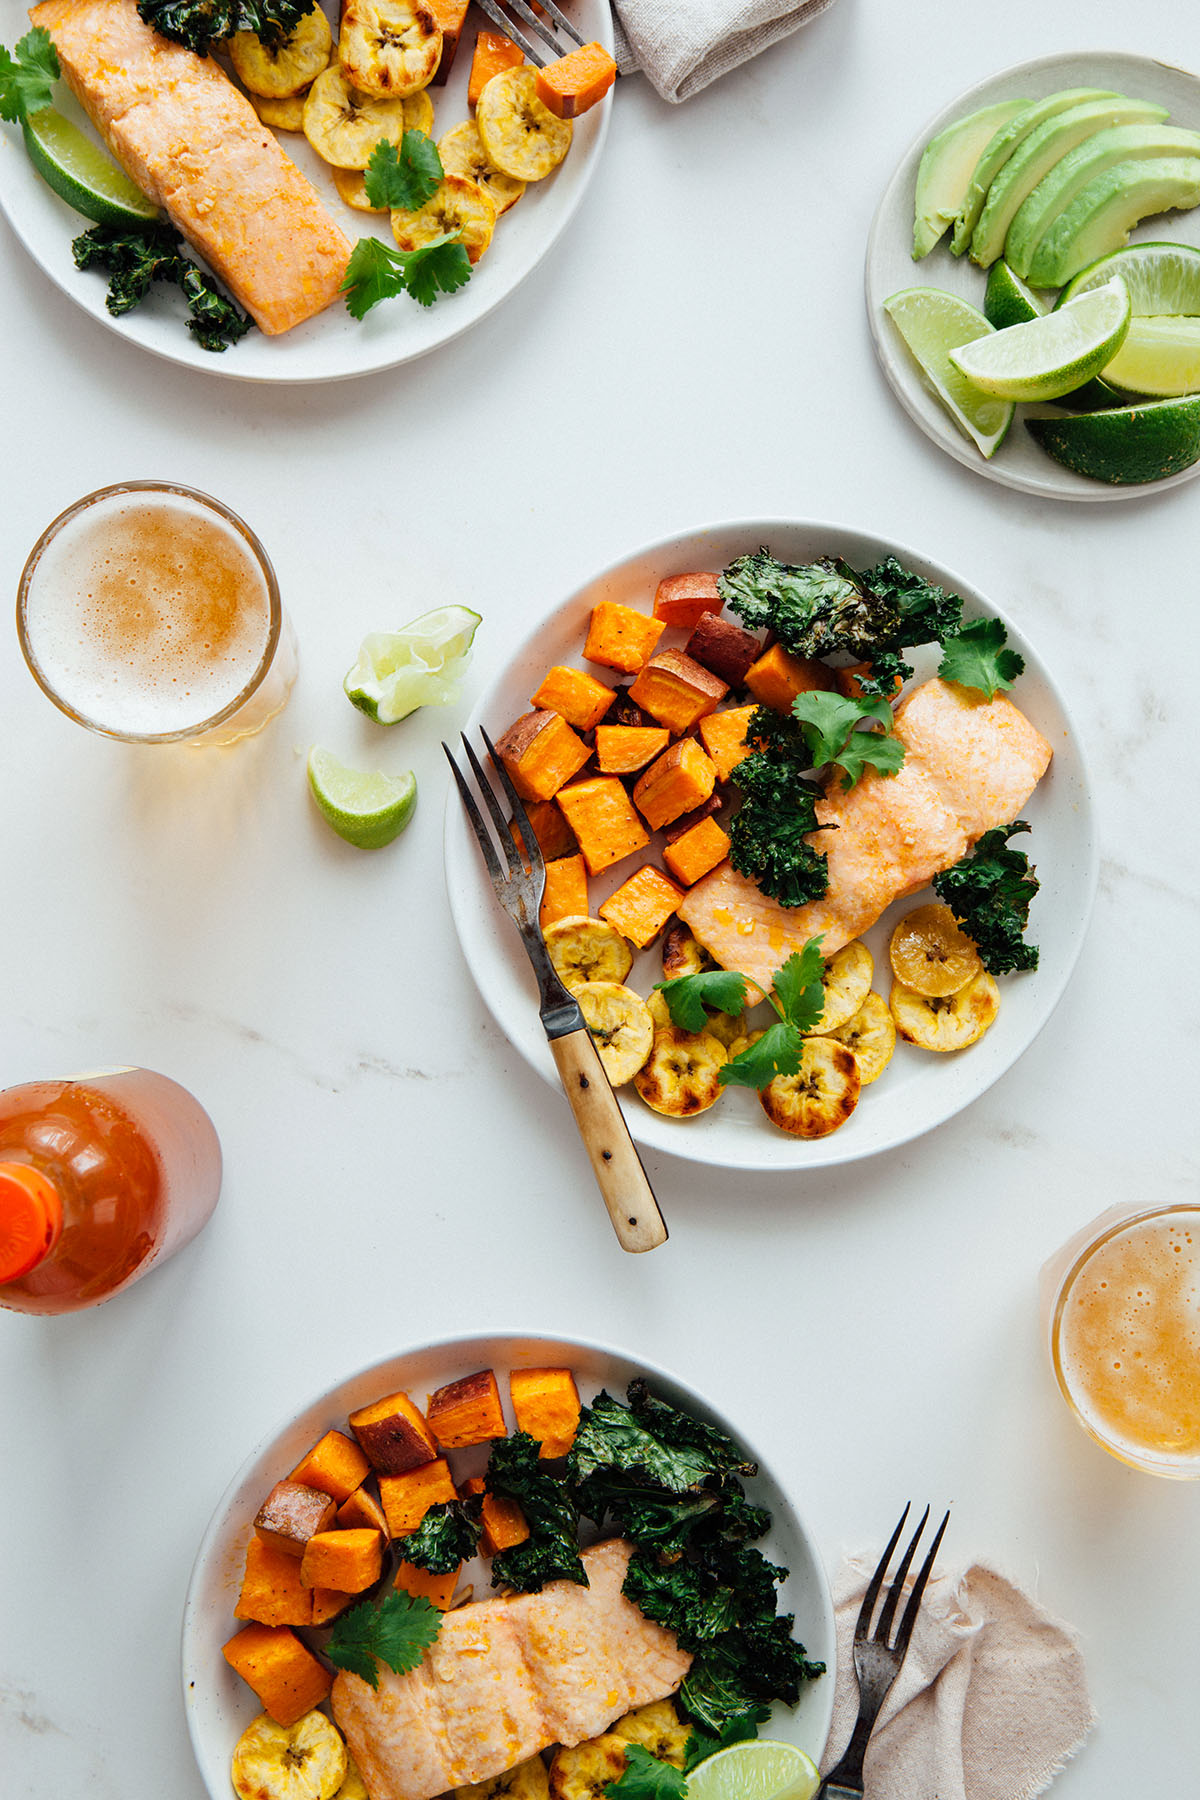 Cuban-inspired sheet pan salmon with roasted plantains, sweet potatoes, and kale chips.